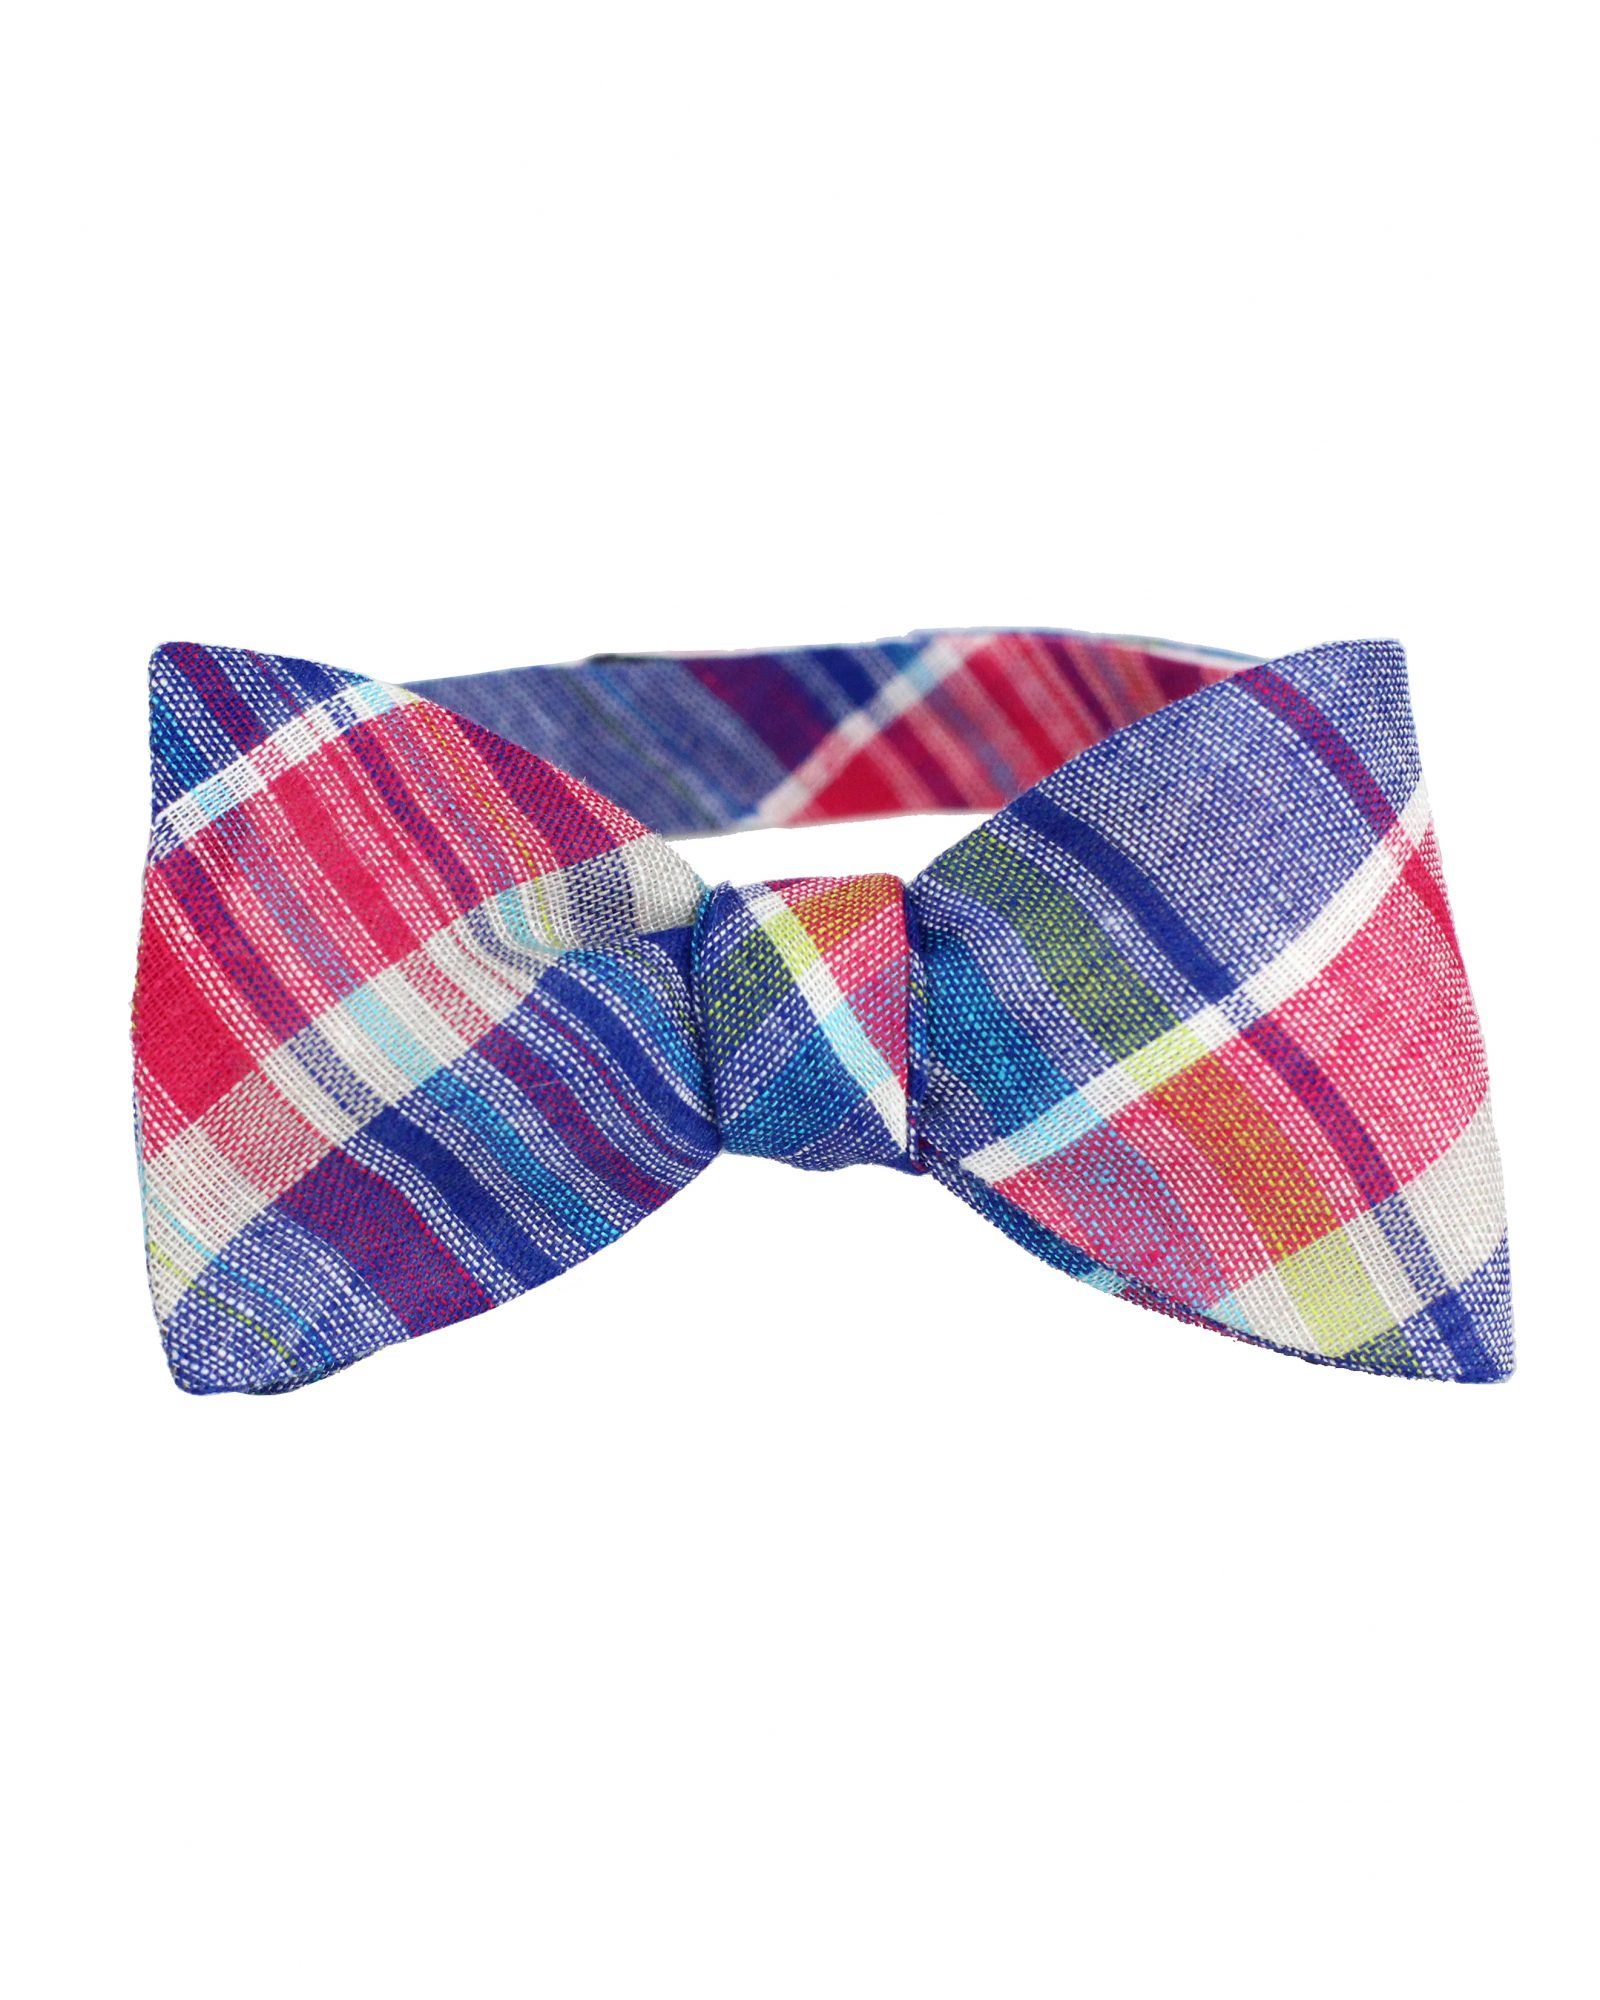 bow-ties-bowsnties-preppy-madras-0814.jpg